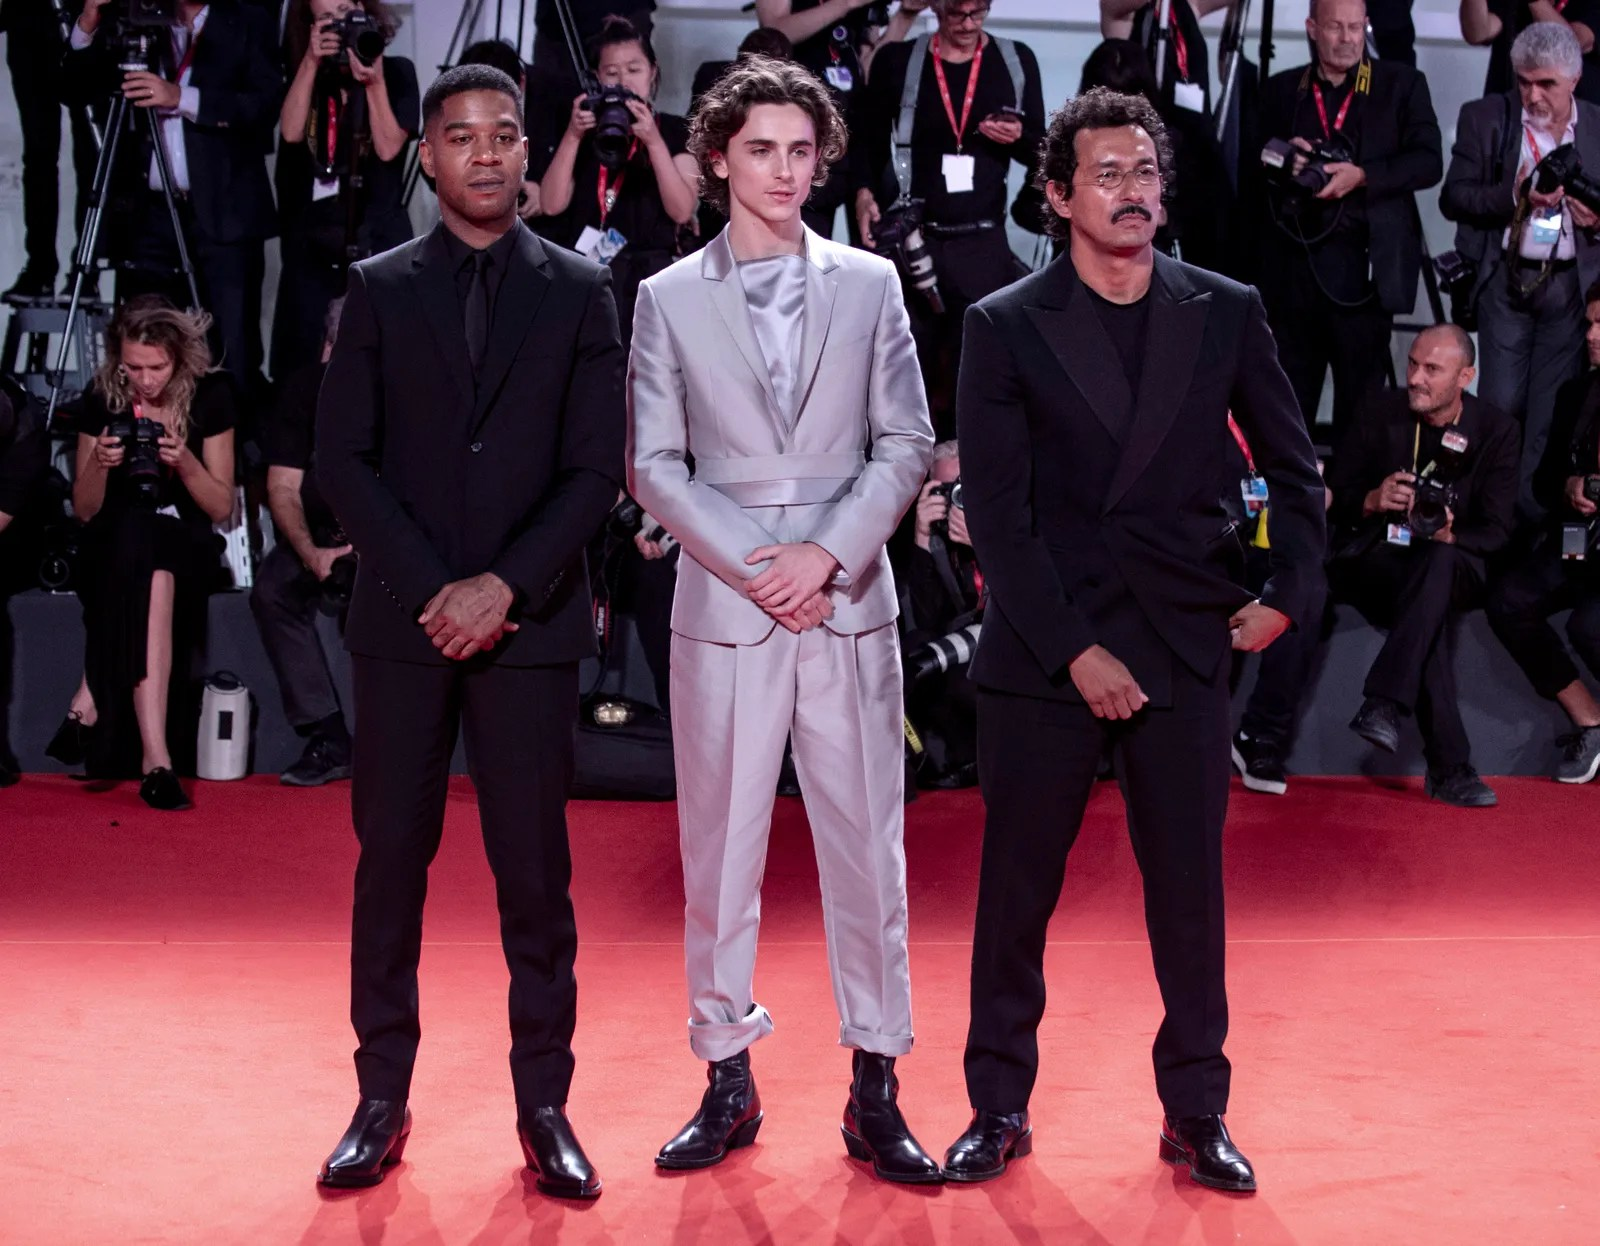 3 men stand on a red carpet with a crowd in the background. 2 are wearing all black while the man in the middle wears...